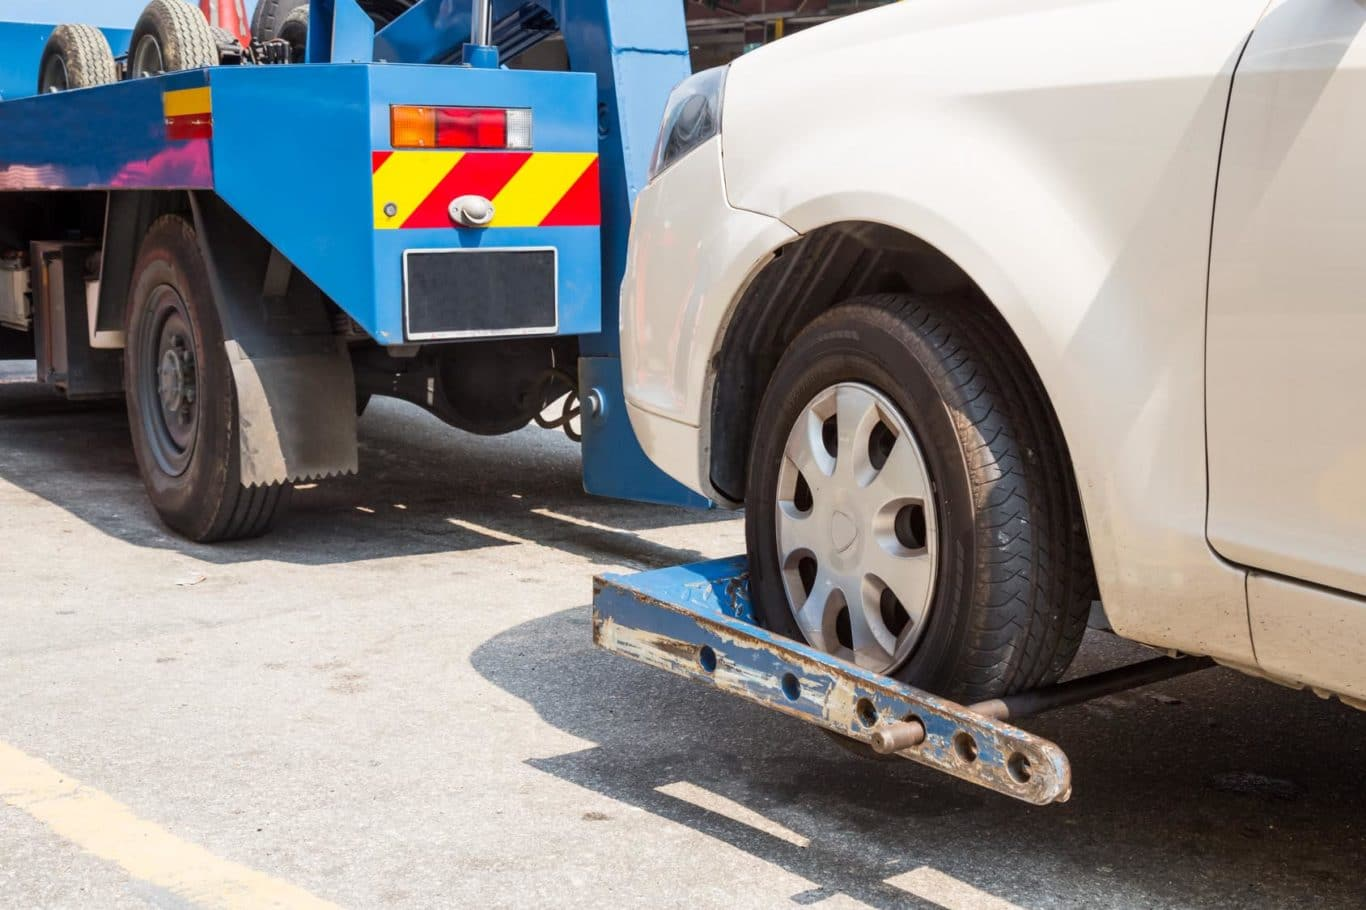 Skerries expert Towing services